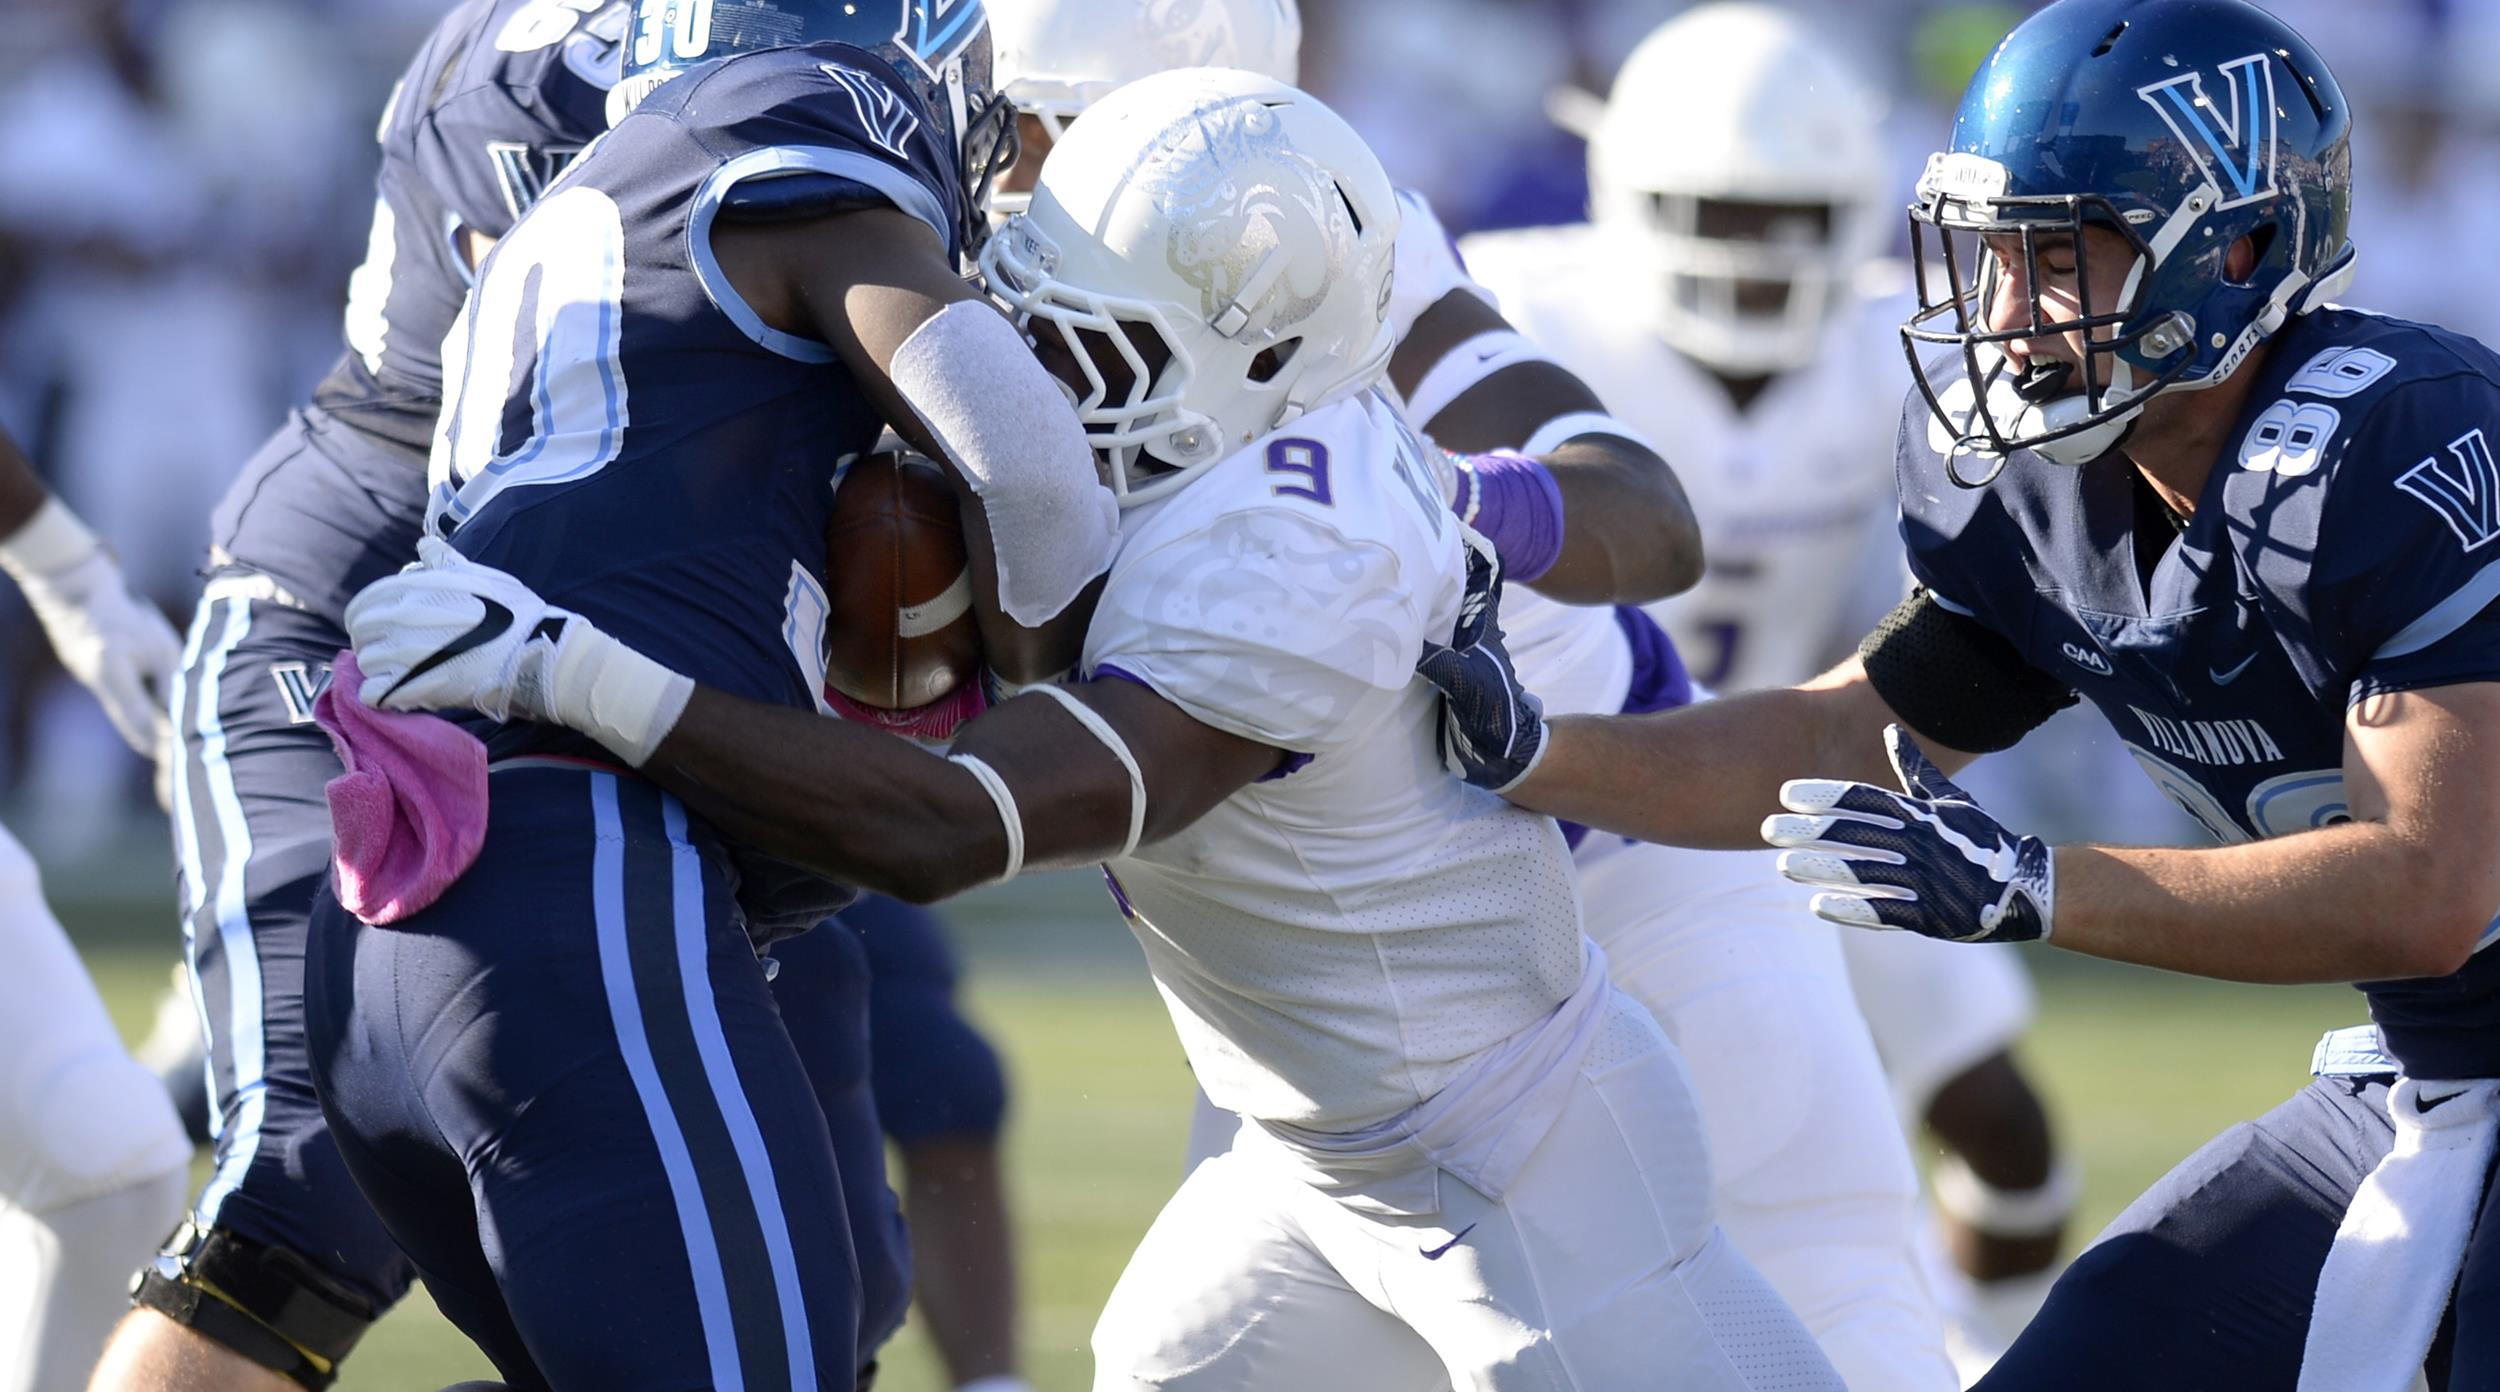 Football: Hawkins Named CAA Defensive Player of the Week for Second Time)